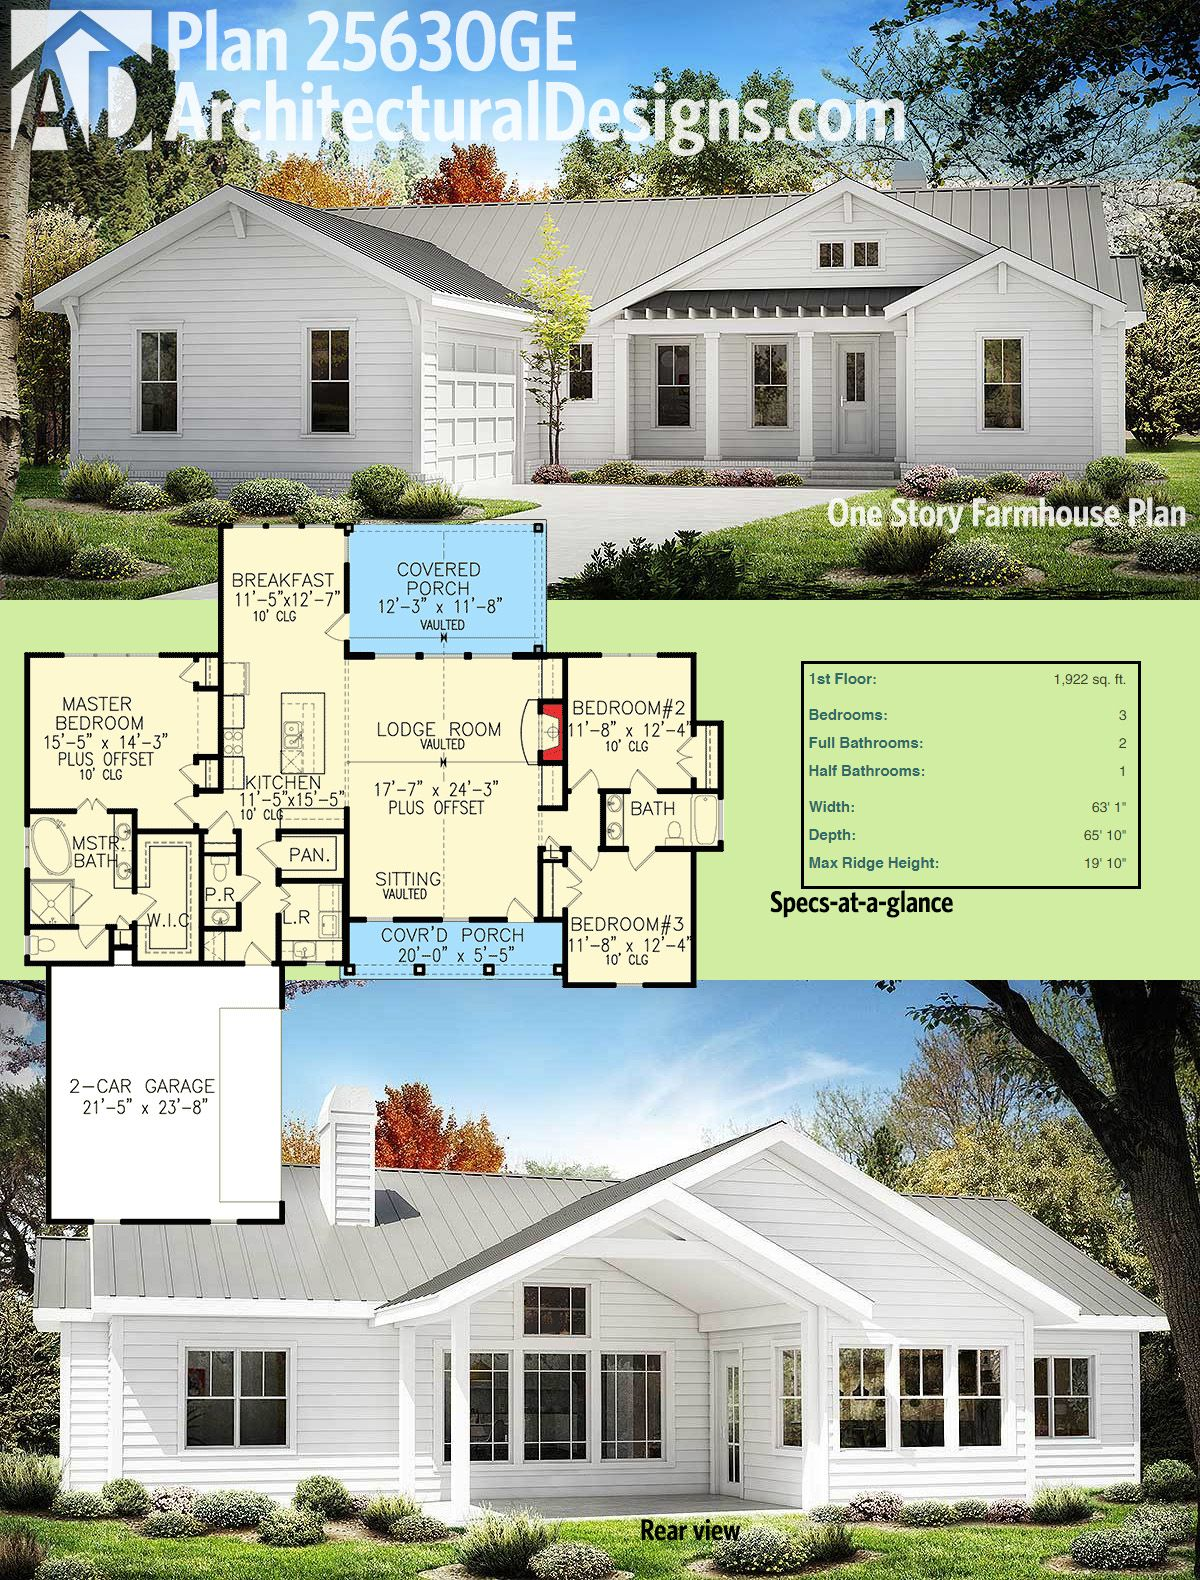 Plan 25630ge one story farmhouse plan farmhouse plans for Modern farmhouse floor plans